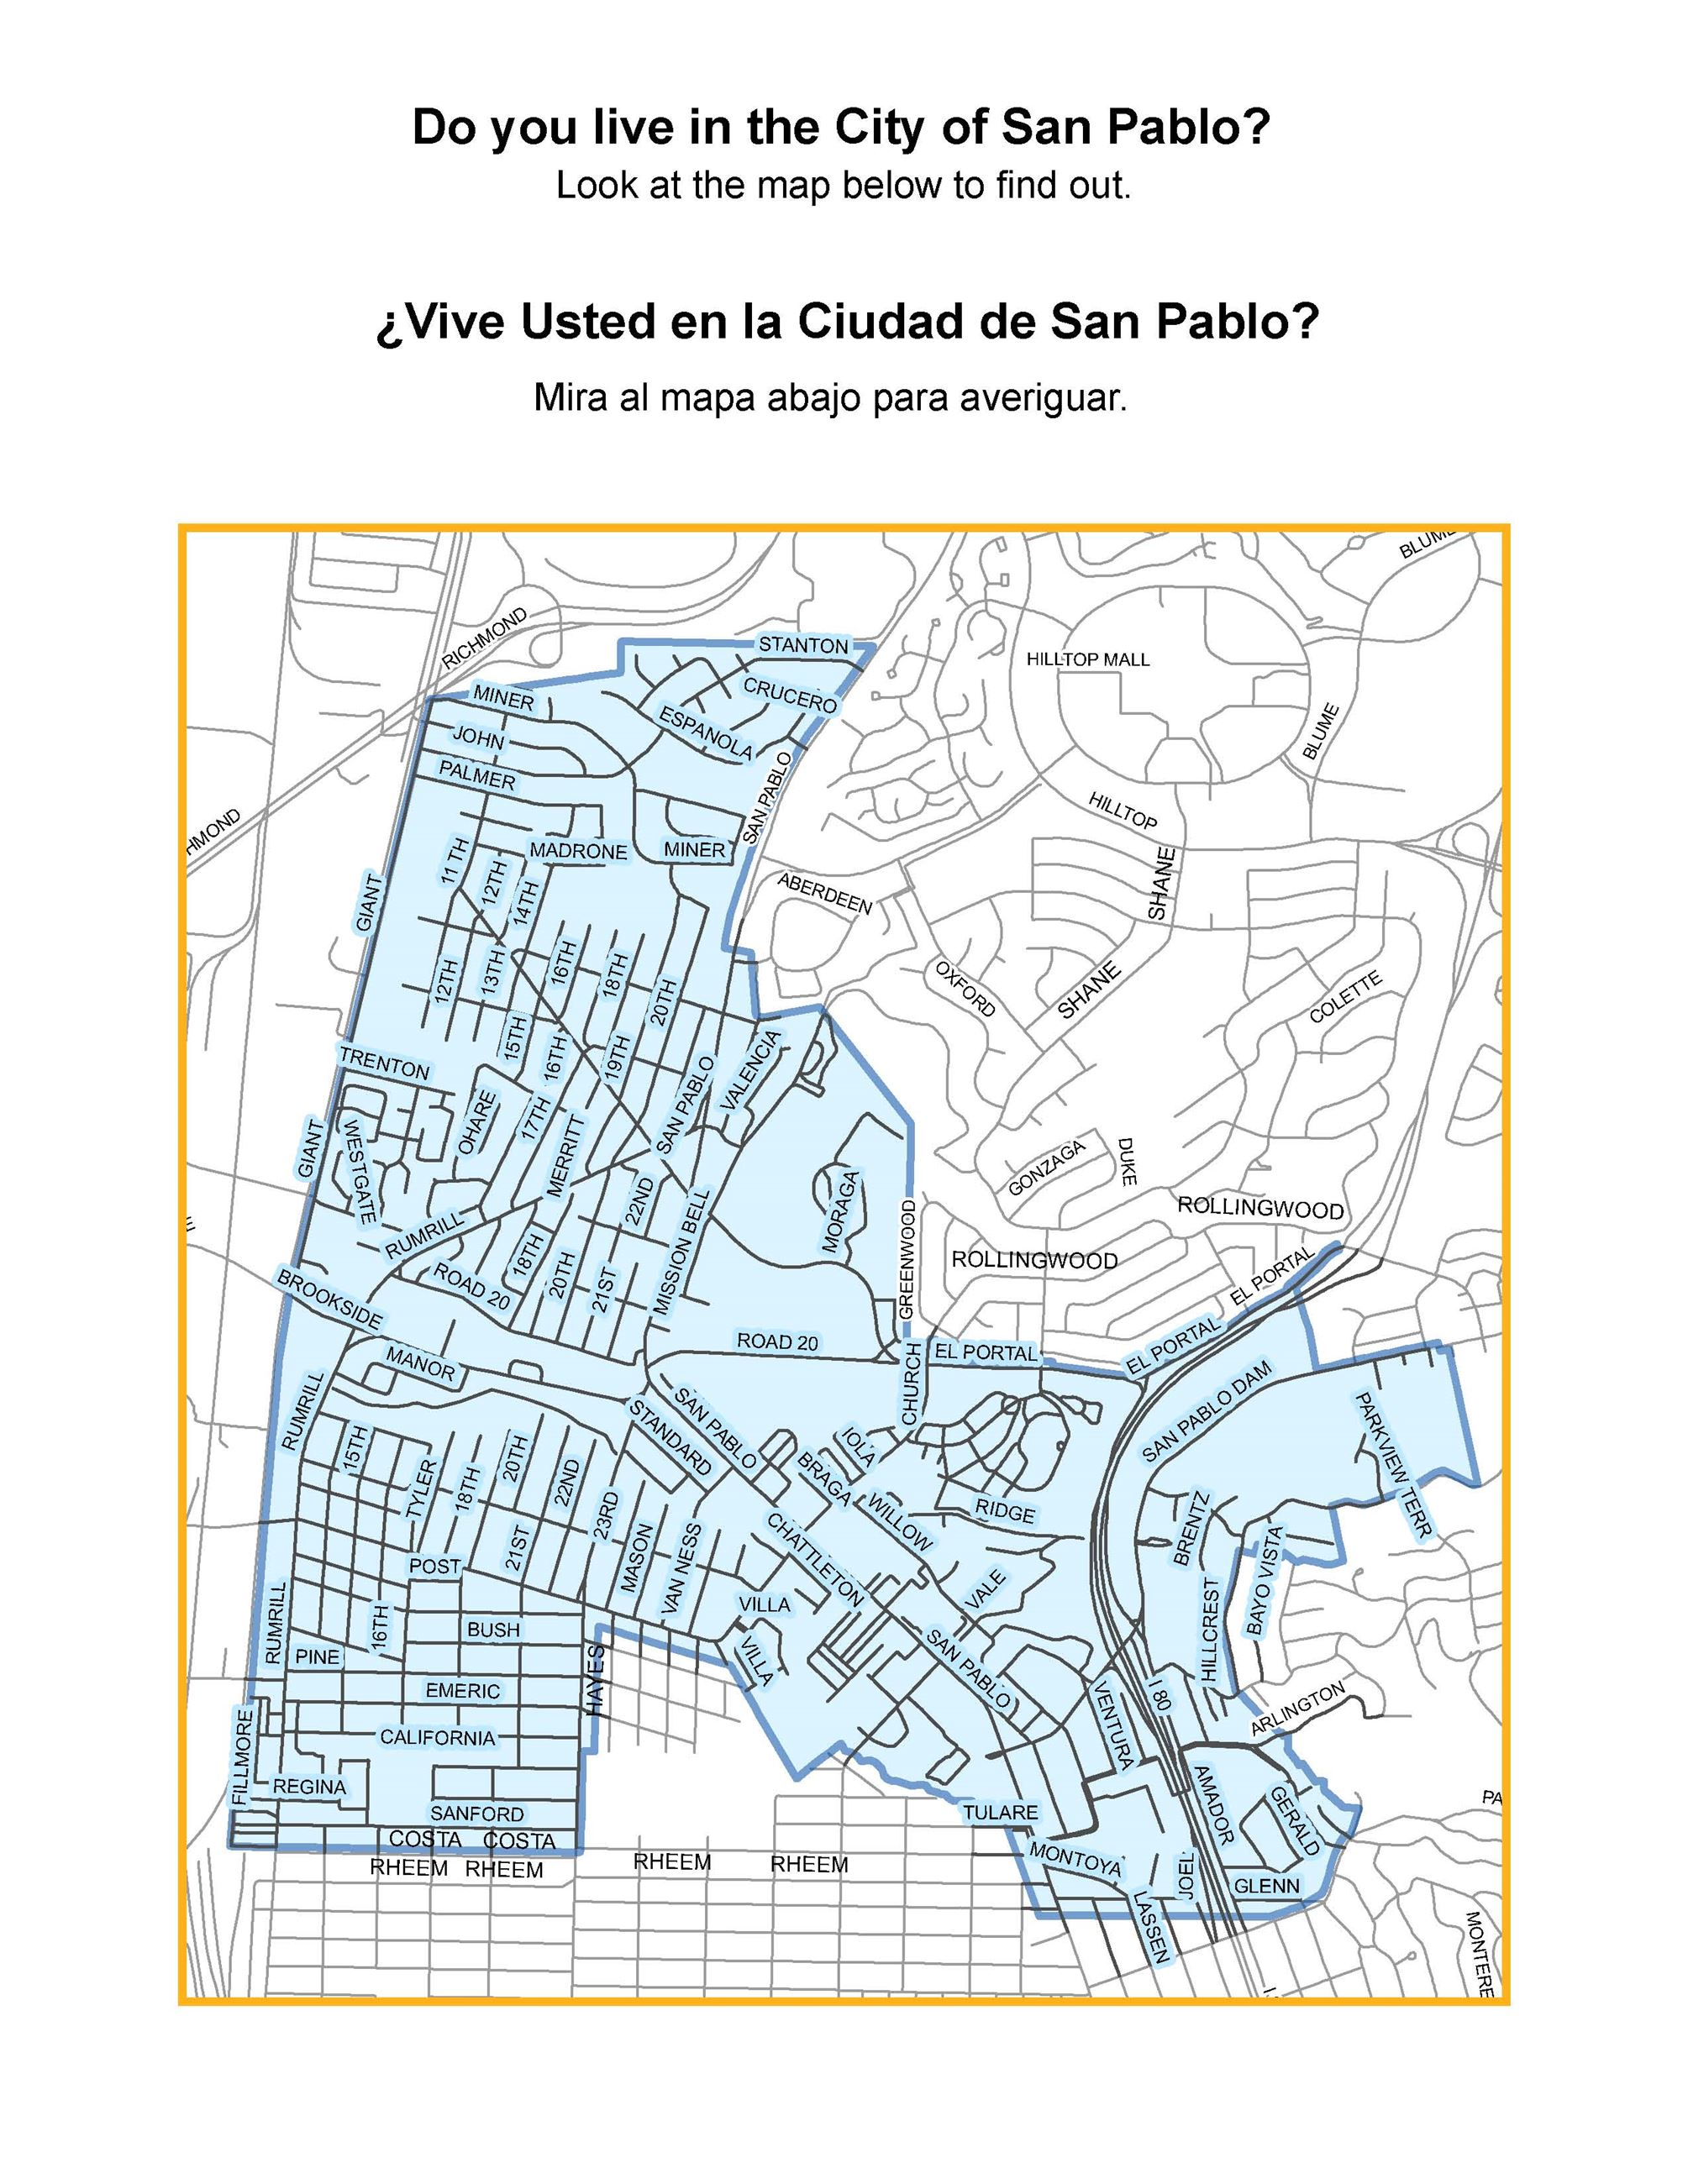 Small-scale map of the City of San Pablo boundaries